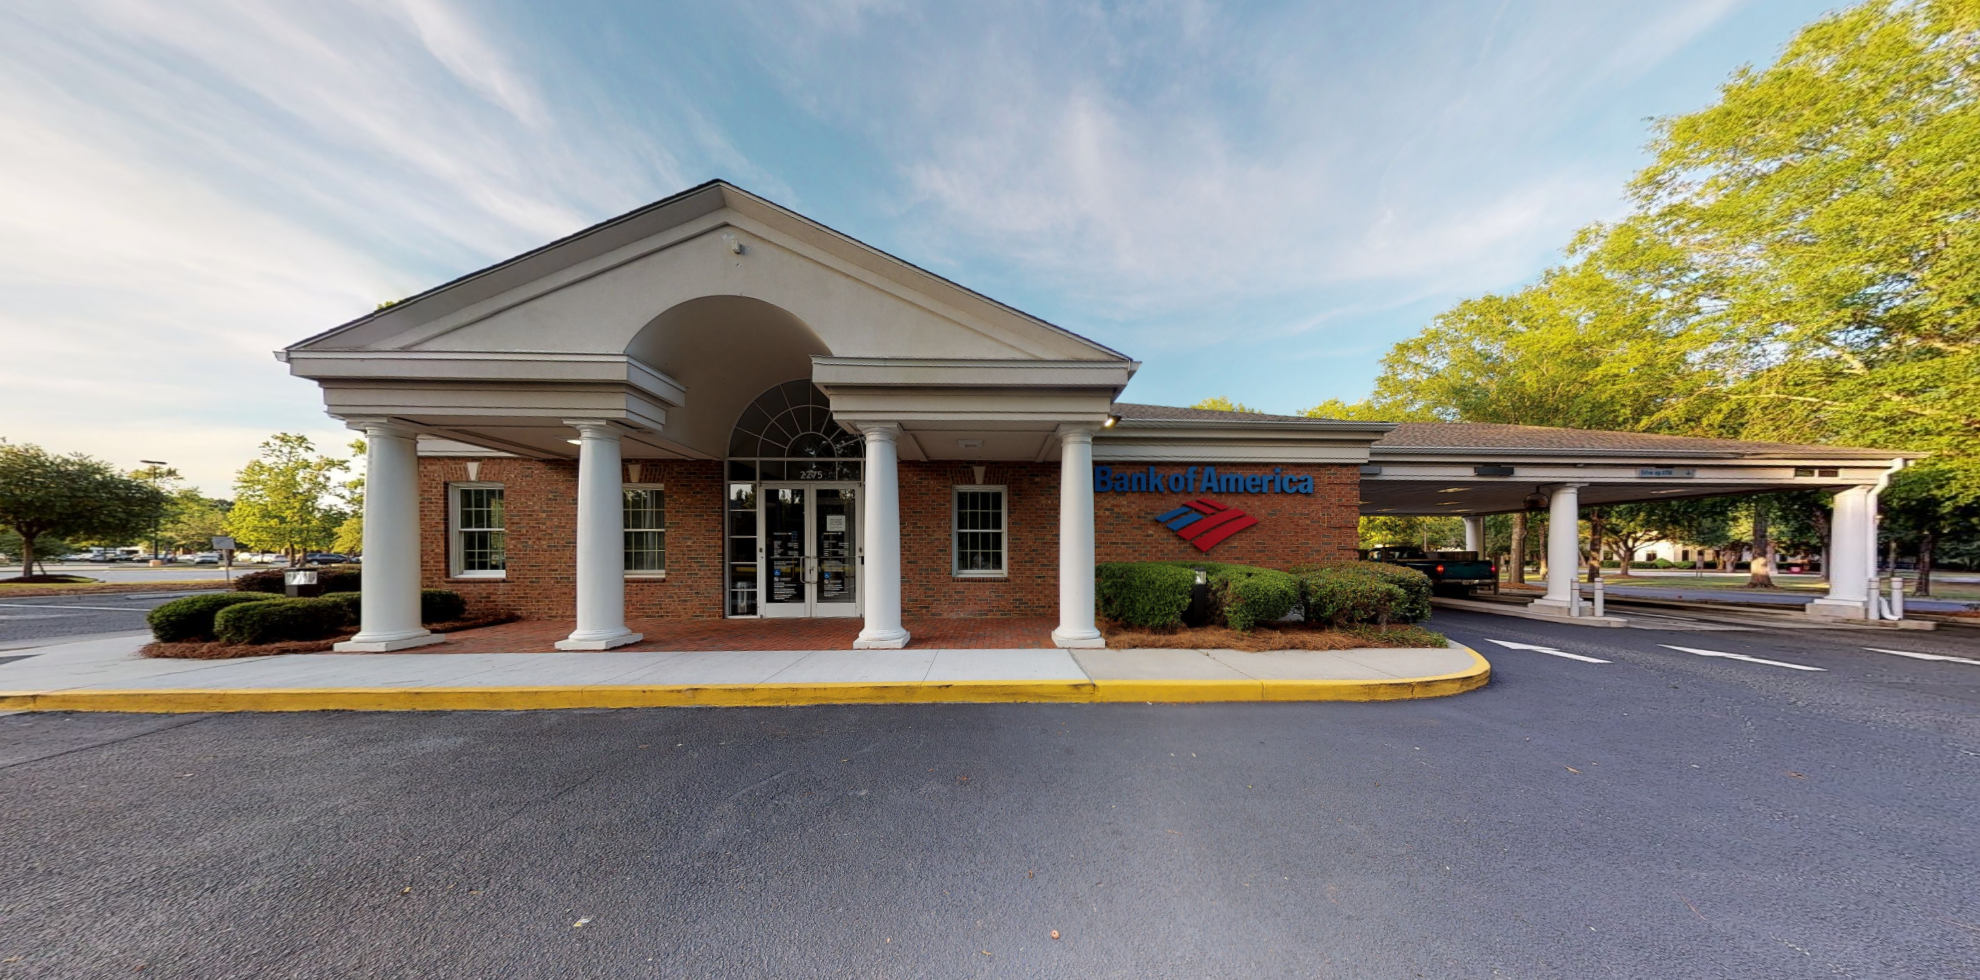 Bank of America financial center with drive-thru ATM | 2275 Ashley Crossing Dr, Charleston, SC 29414